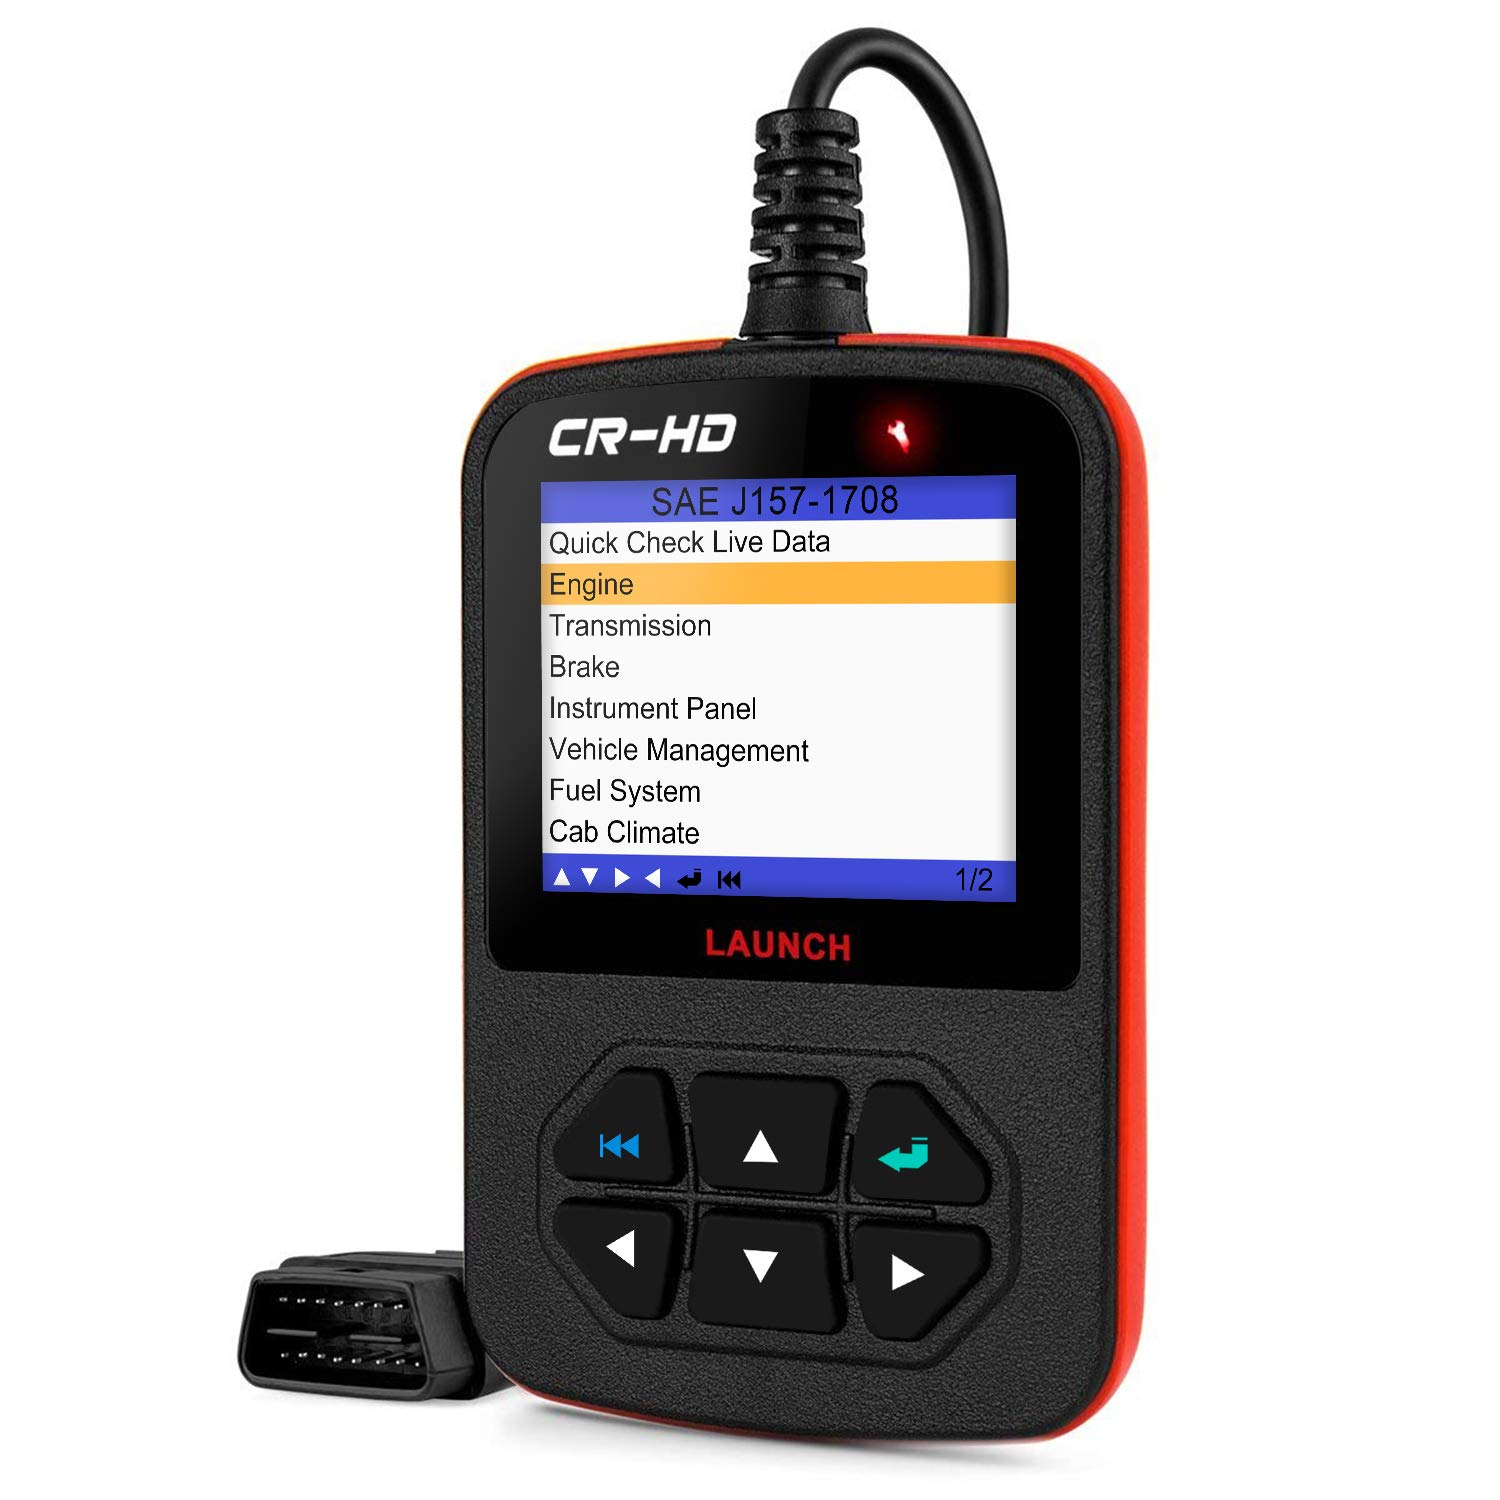 LAUNCH CReader HD Plus Heavy Duty Truck Obd2 Diagnostic Reader OBDII Scan Tool CRHD Truck Code Scanner with OBD-II Communication Modes 1-10 and J1587, J1708 and J1939 protocols